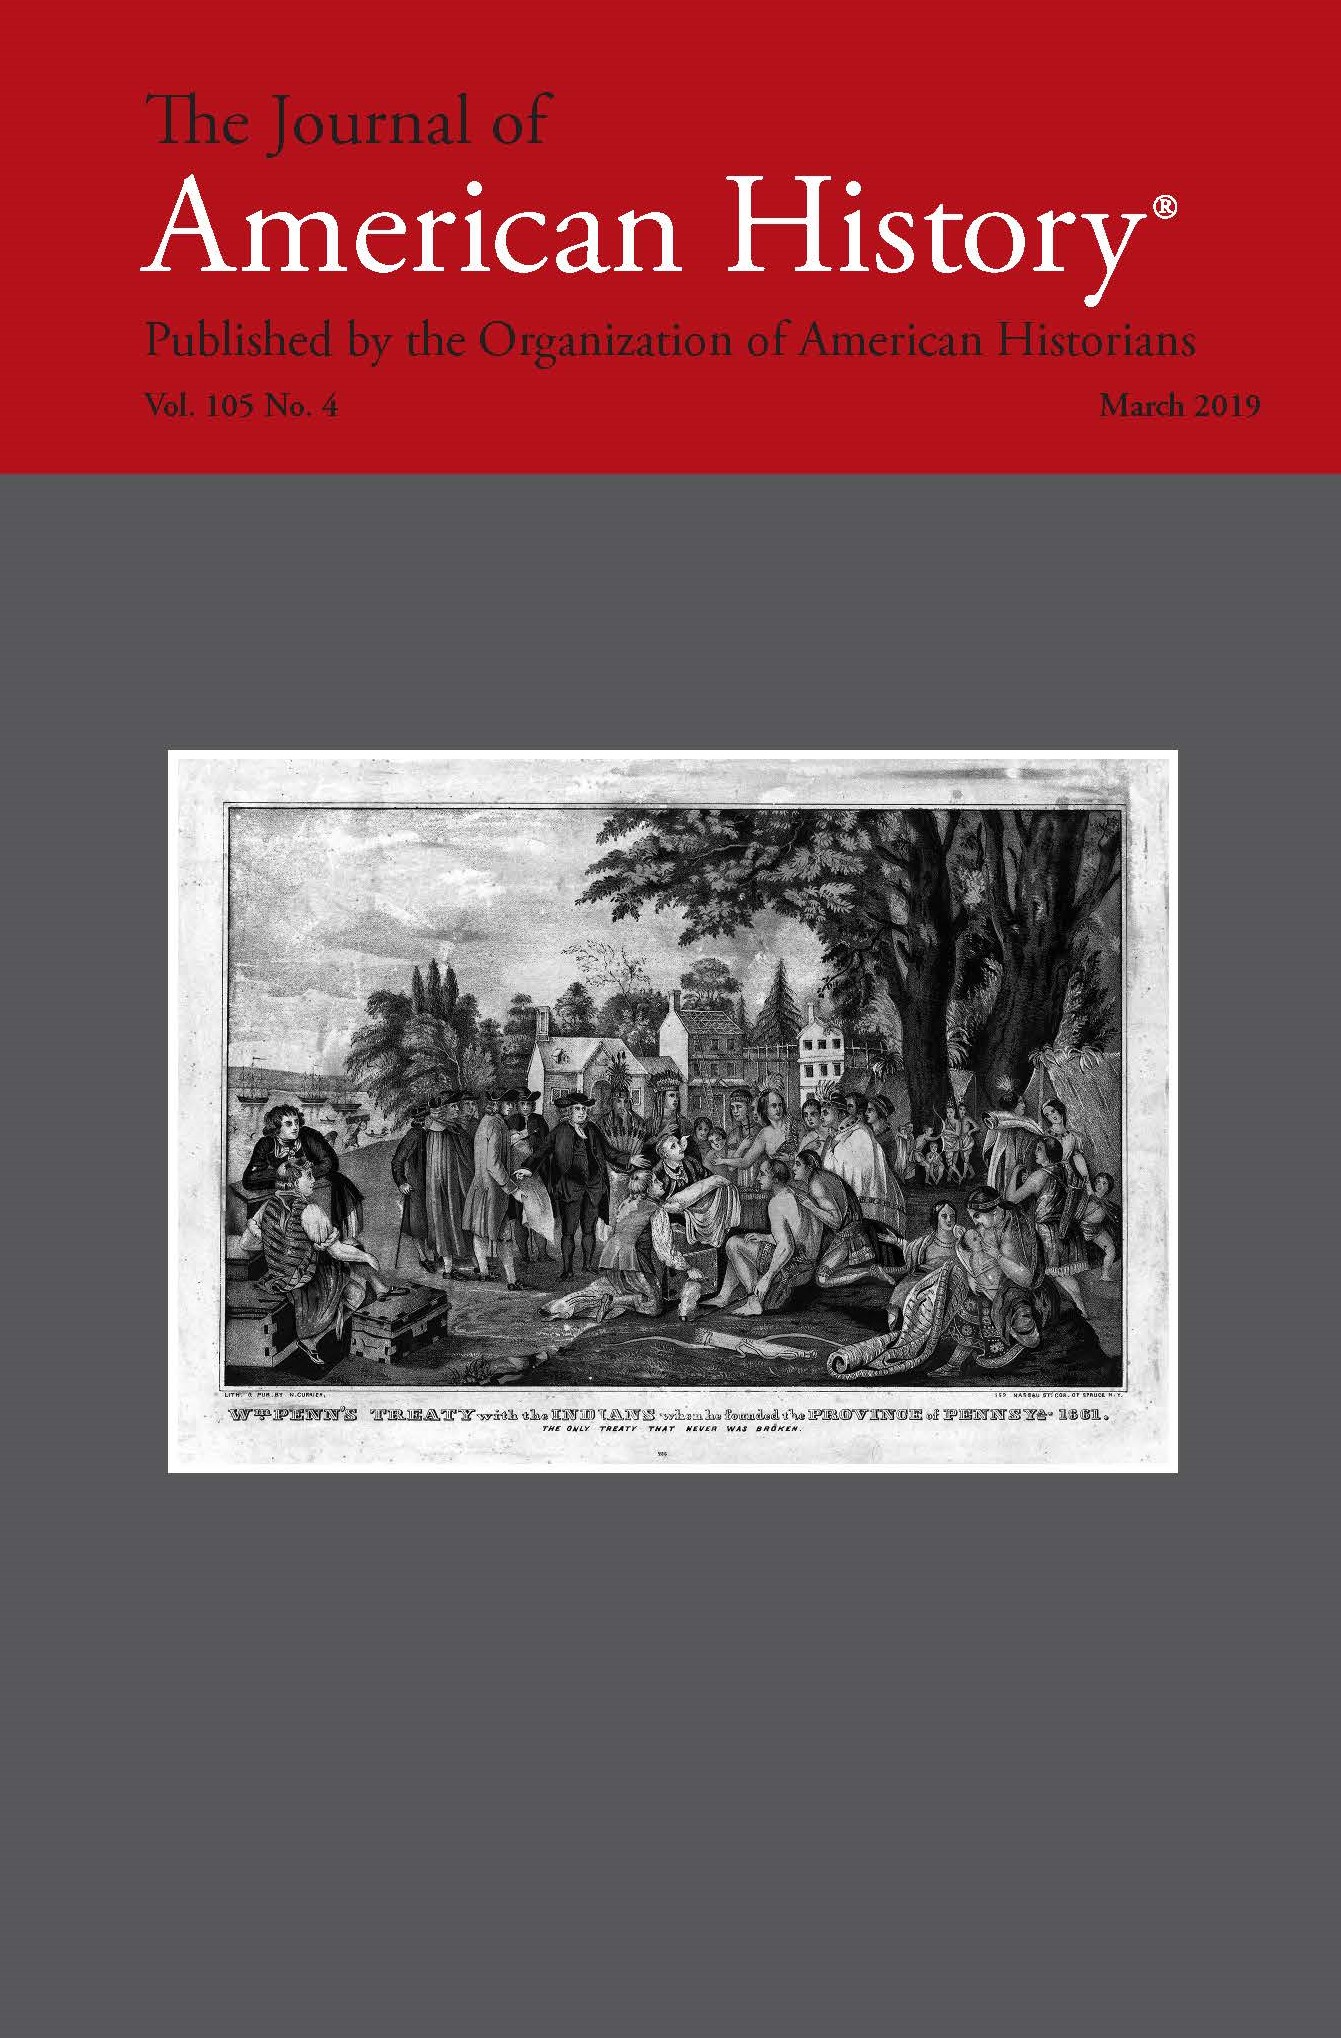 What's in the March Issue of the Journal of American History?